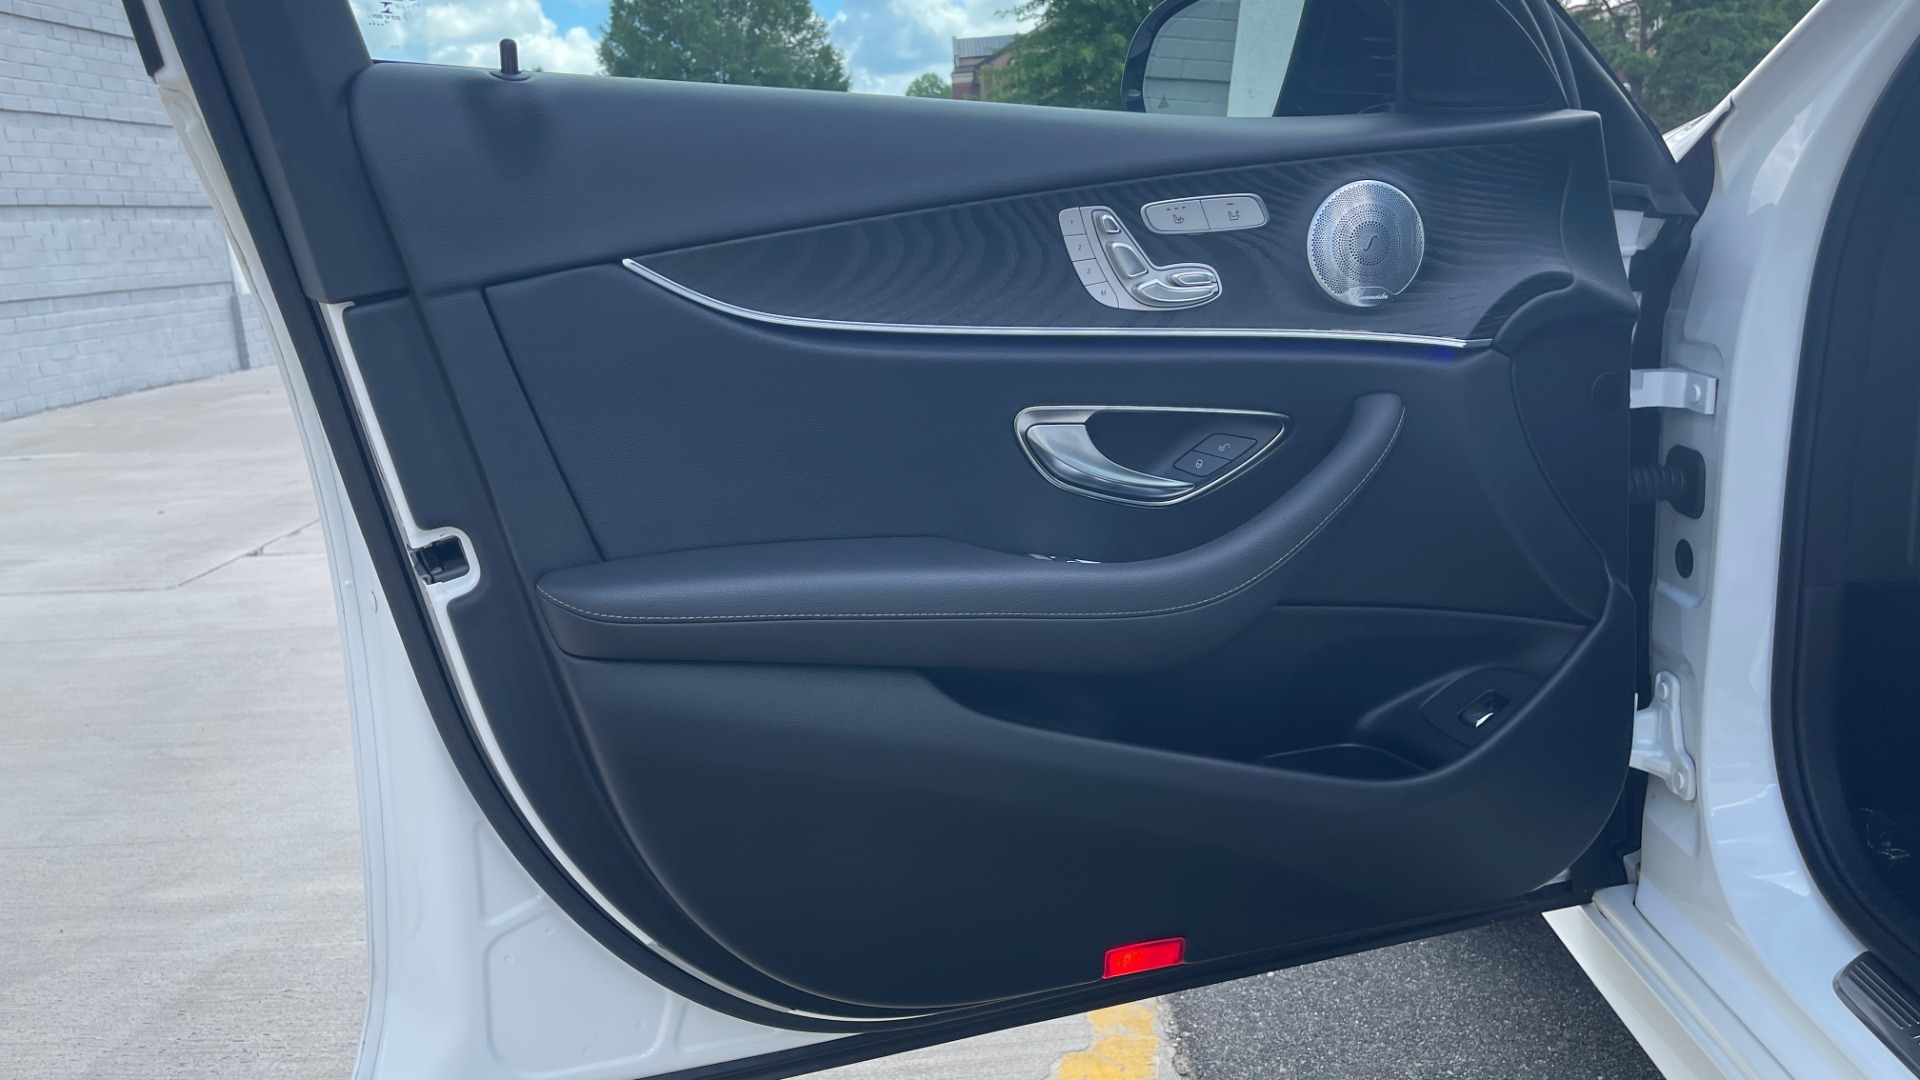 Used 2018 Mercedes-Benz E-CLASS E 300 PREMIUM / NIGHT PKG / PANO-ROOF / BURMESTER / REARVIEW for sale $42,399 at Formula Imports in Charlotte NC 28227 32